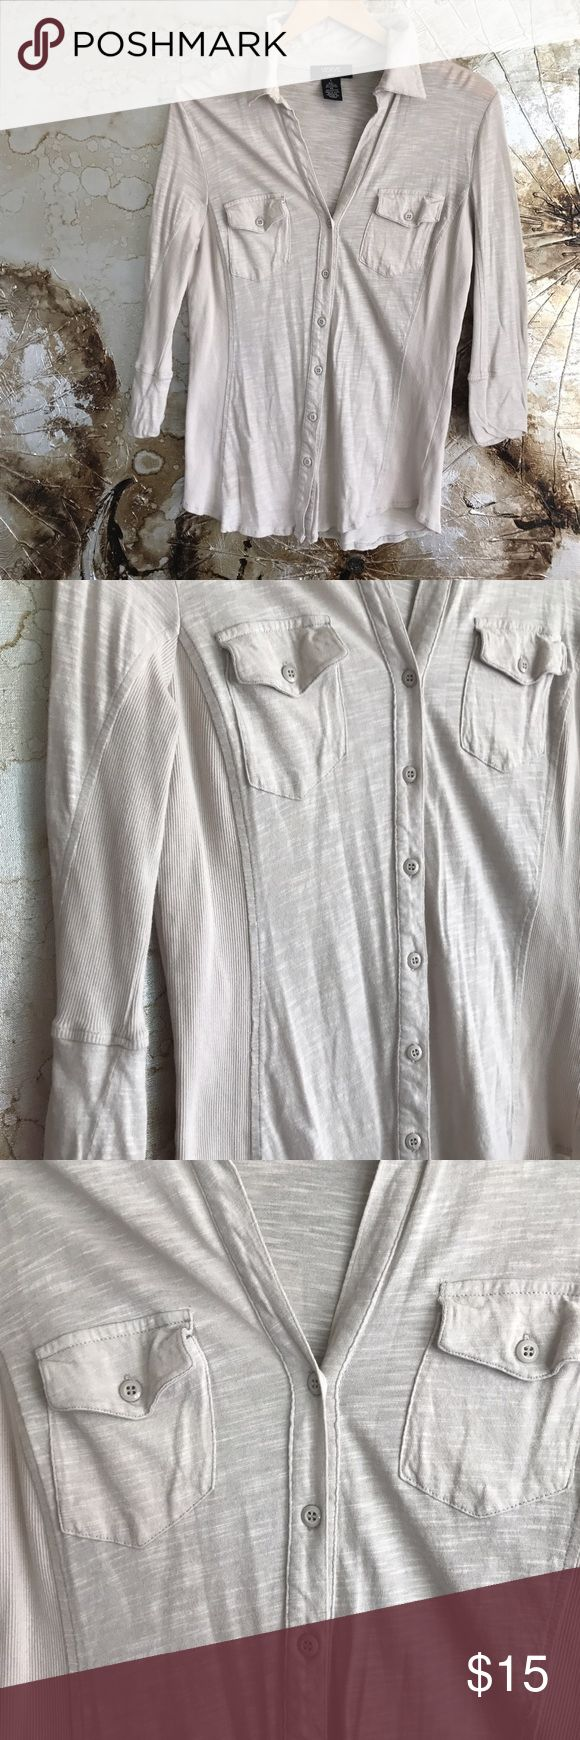 VERVE ami top Verve ami cotton blend button up T. Cute from pockets with waist fitting ribber sides. 3/4 sleeve lightweight enough to layer with a cardigan. Light gray in color. Size large verve ami Tops Button Down Shirts